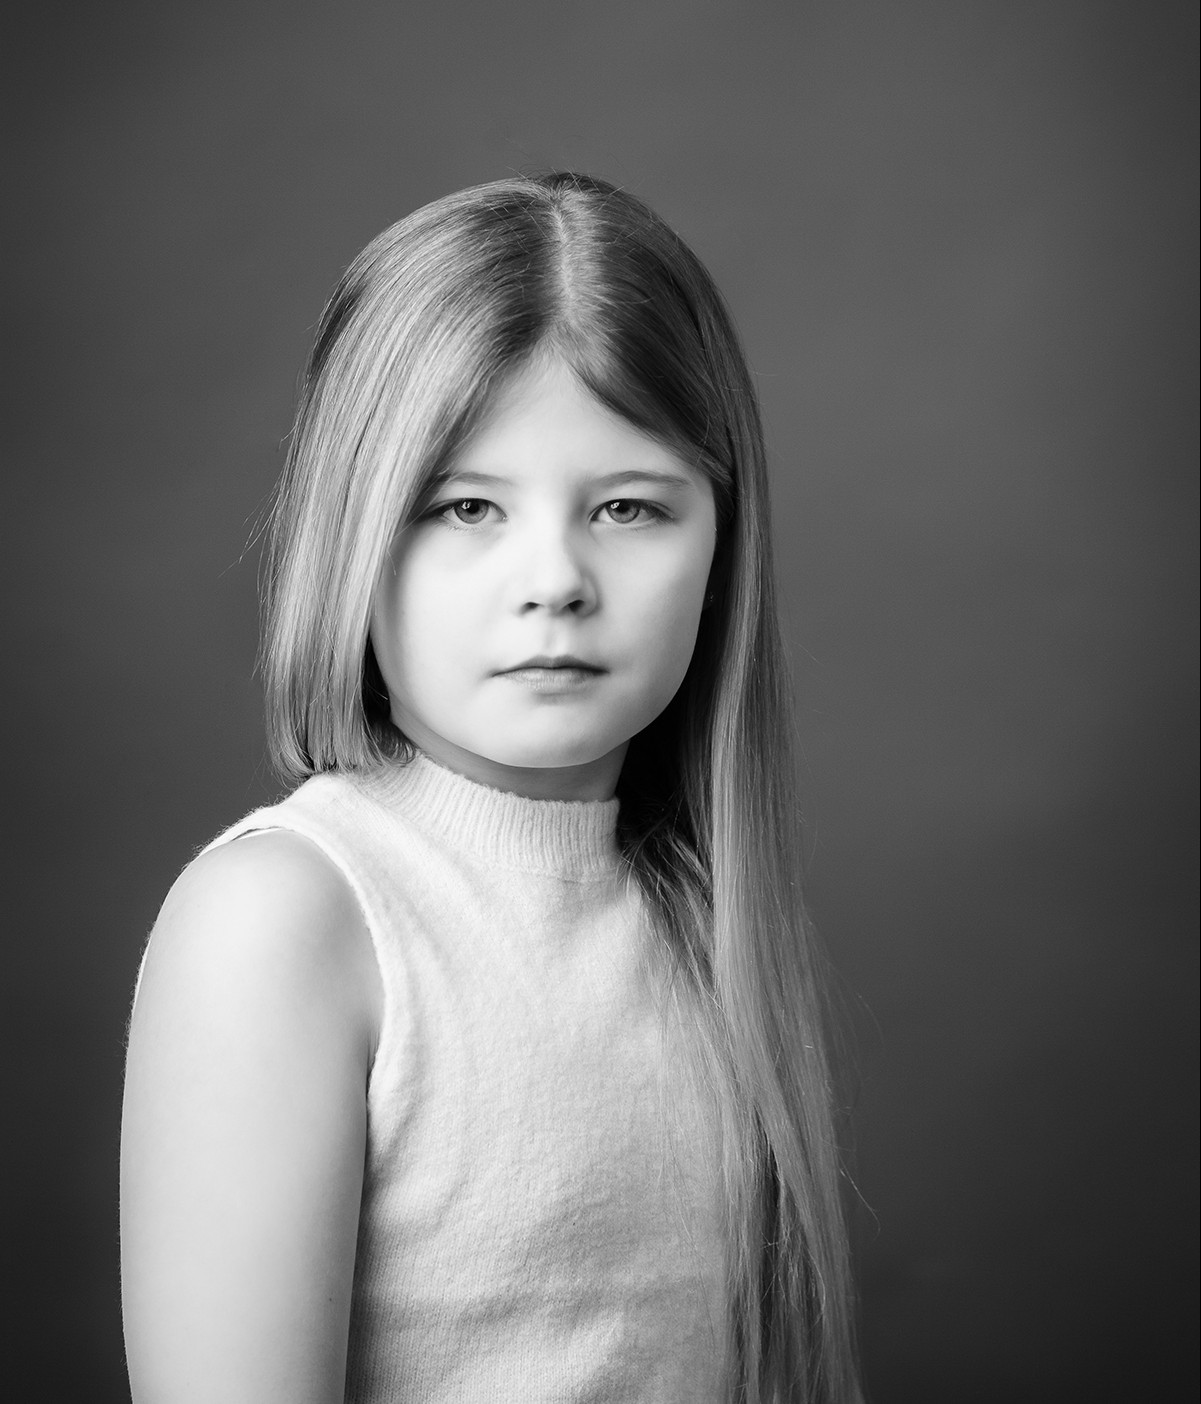 8 year old girl classical portrait, chester photoshoot